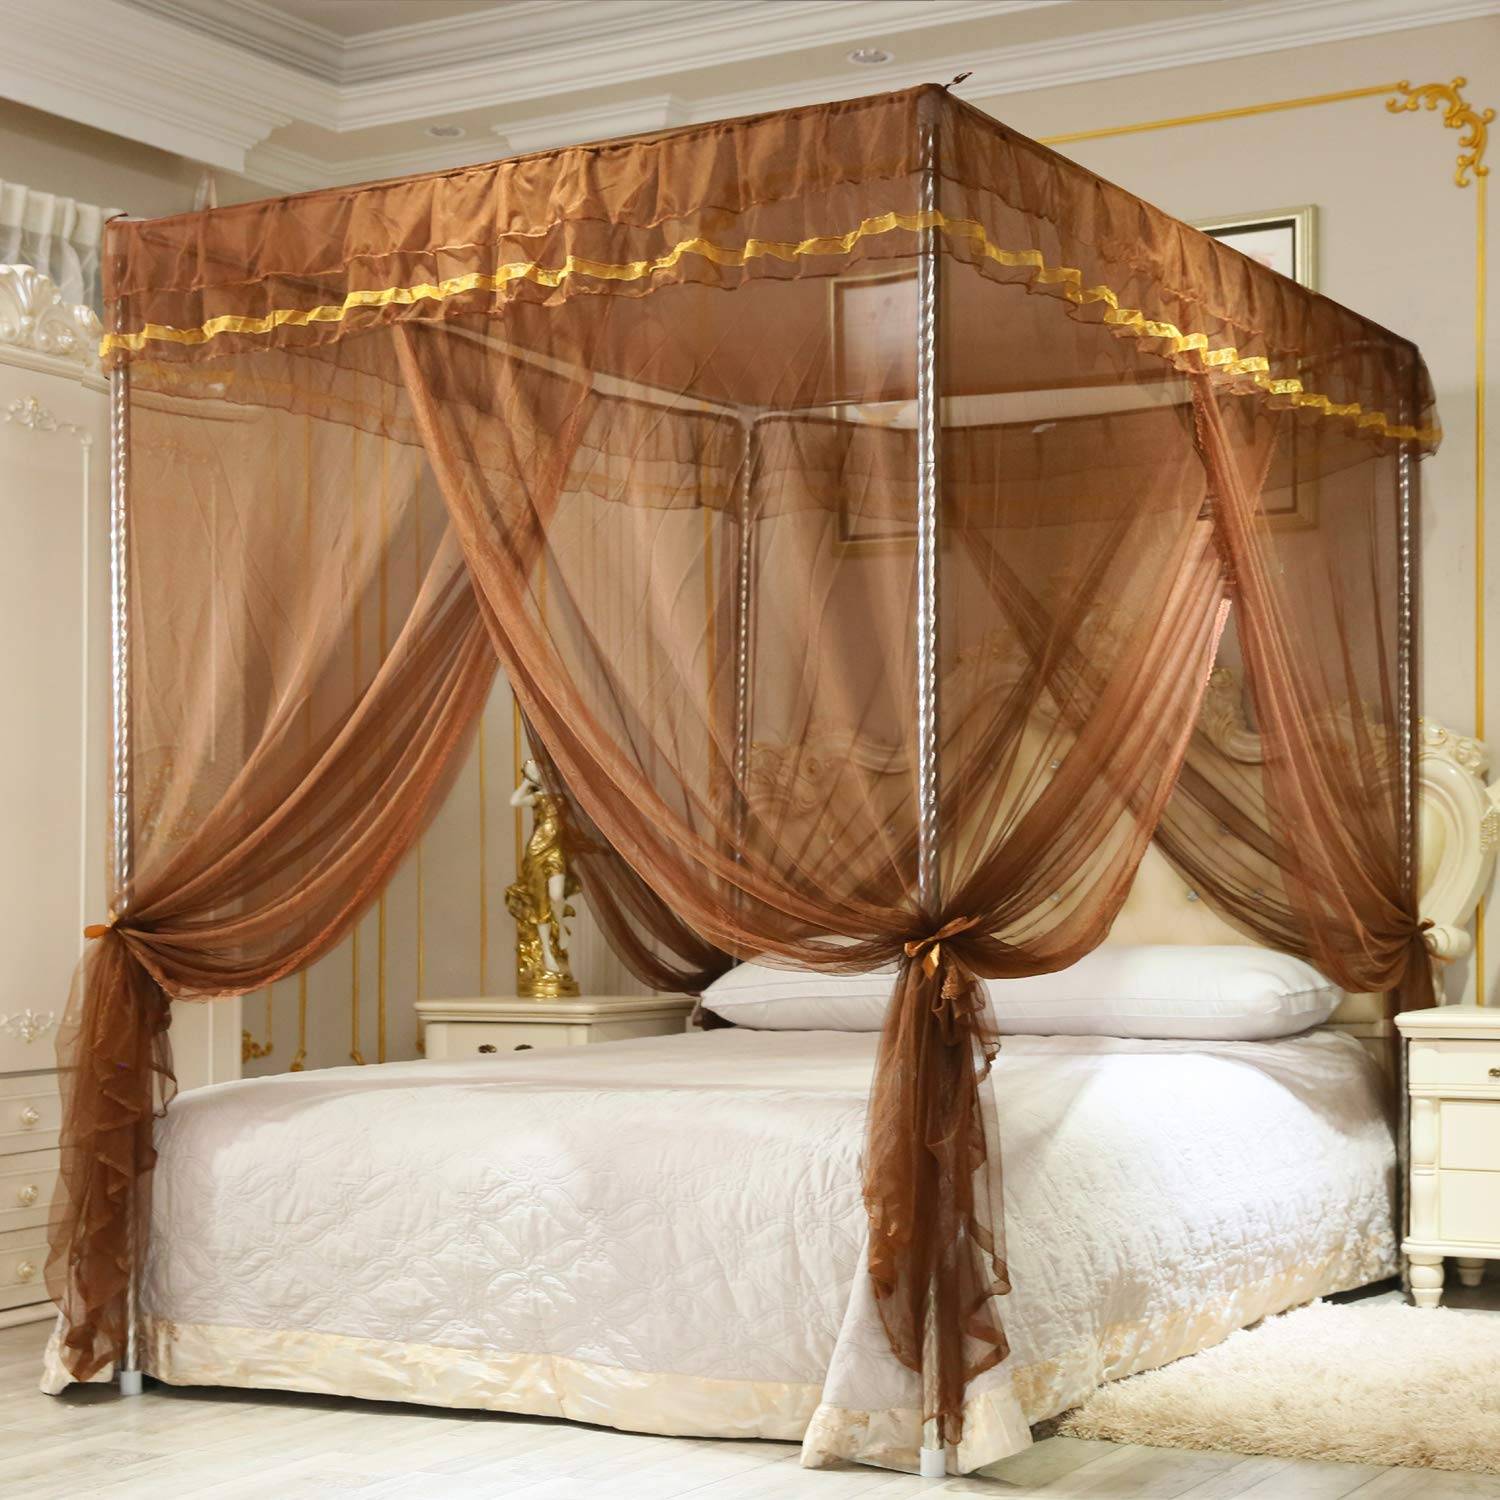 Nattey Simple 4 Corners Post Canopy Bed Curtain for Girls Boys & Adults Gift - 4 Opening - Bedroom Decoration (King, Brown) by Nattey